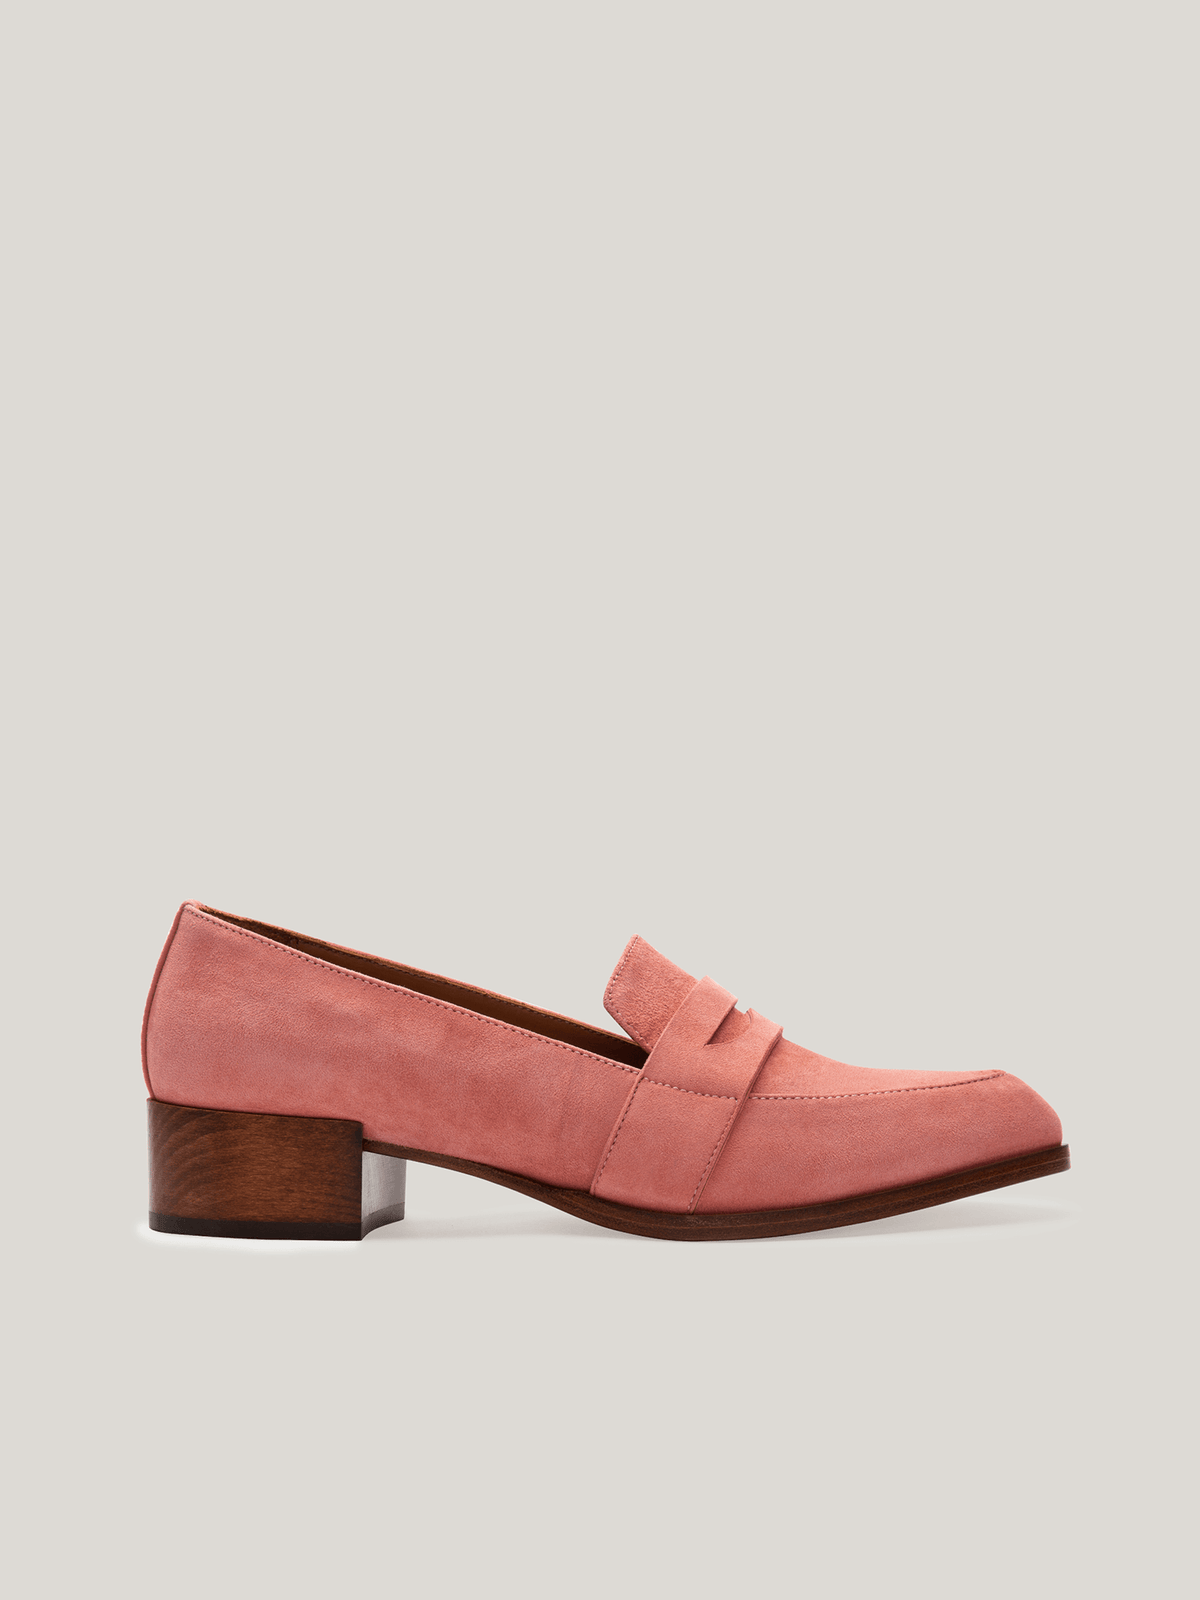 Thelma Loafer in Dusk